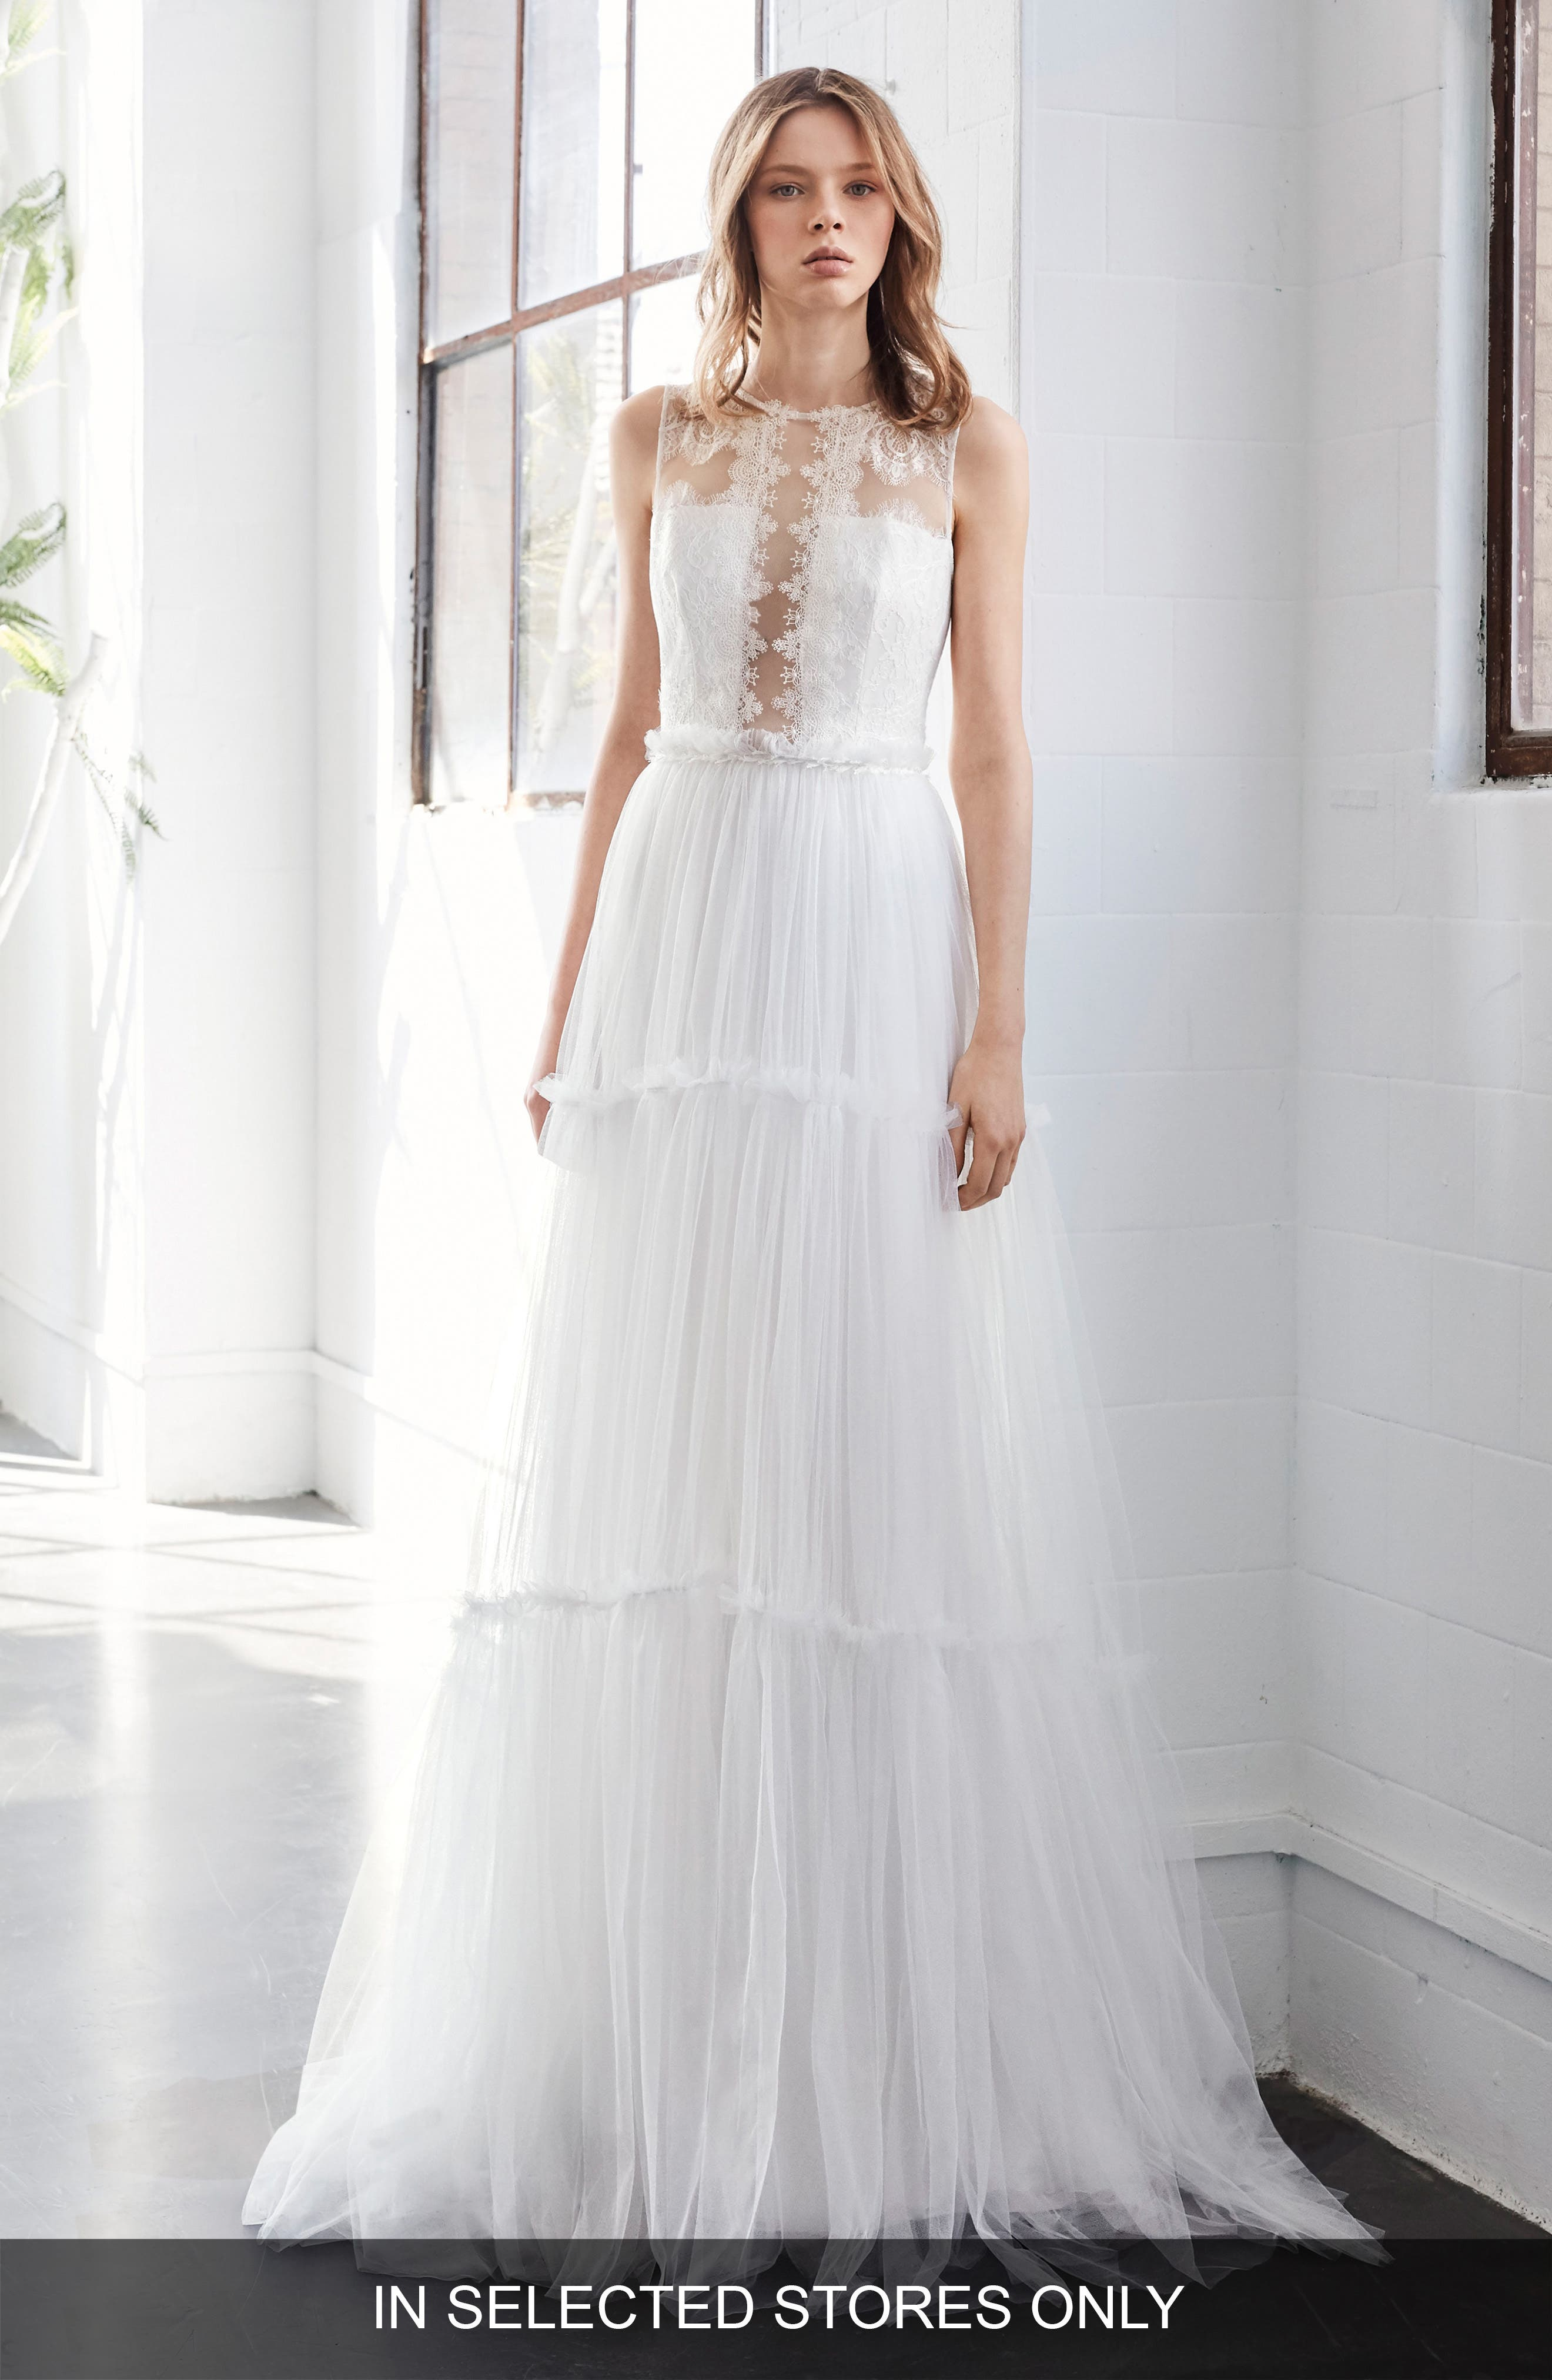 Main Image - Inmaculada García Jaspe Lace & Tulle A-Line Gown